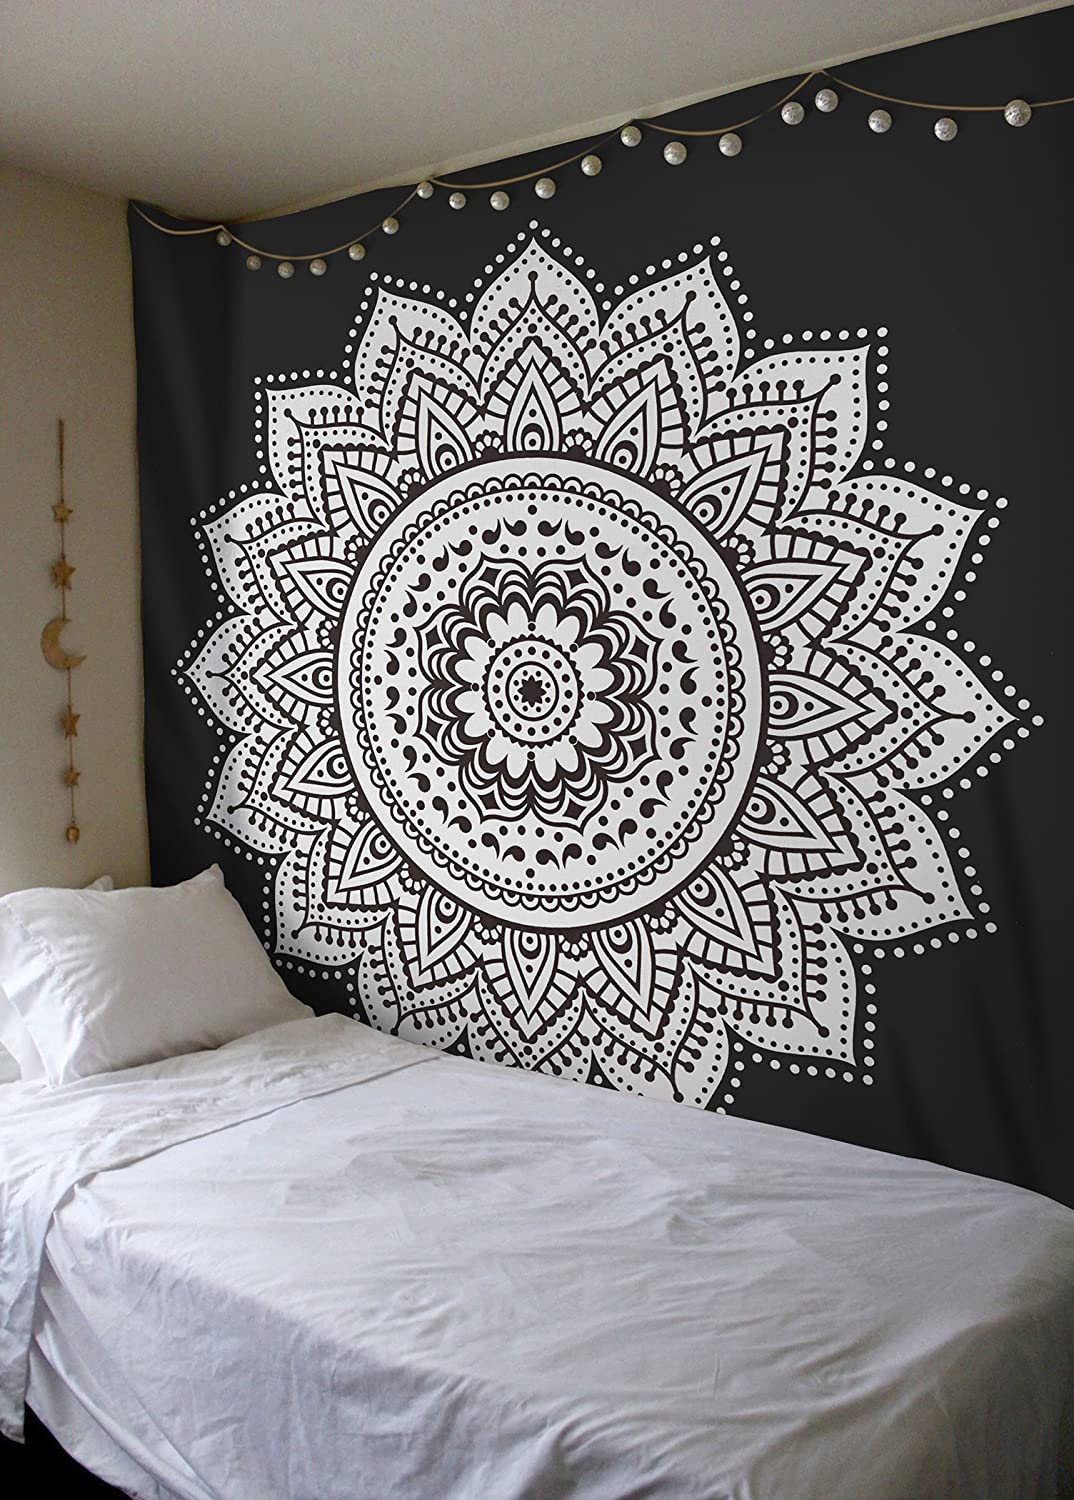 Madhu International Mandala Tapestry Wall Hanging Psychedelic Hippie Bohemian Tapestries Indian Bedding Wall Decor (Black & White, King(90x108Inches)(230x275cms))